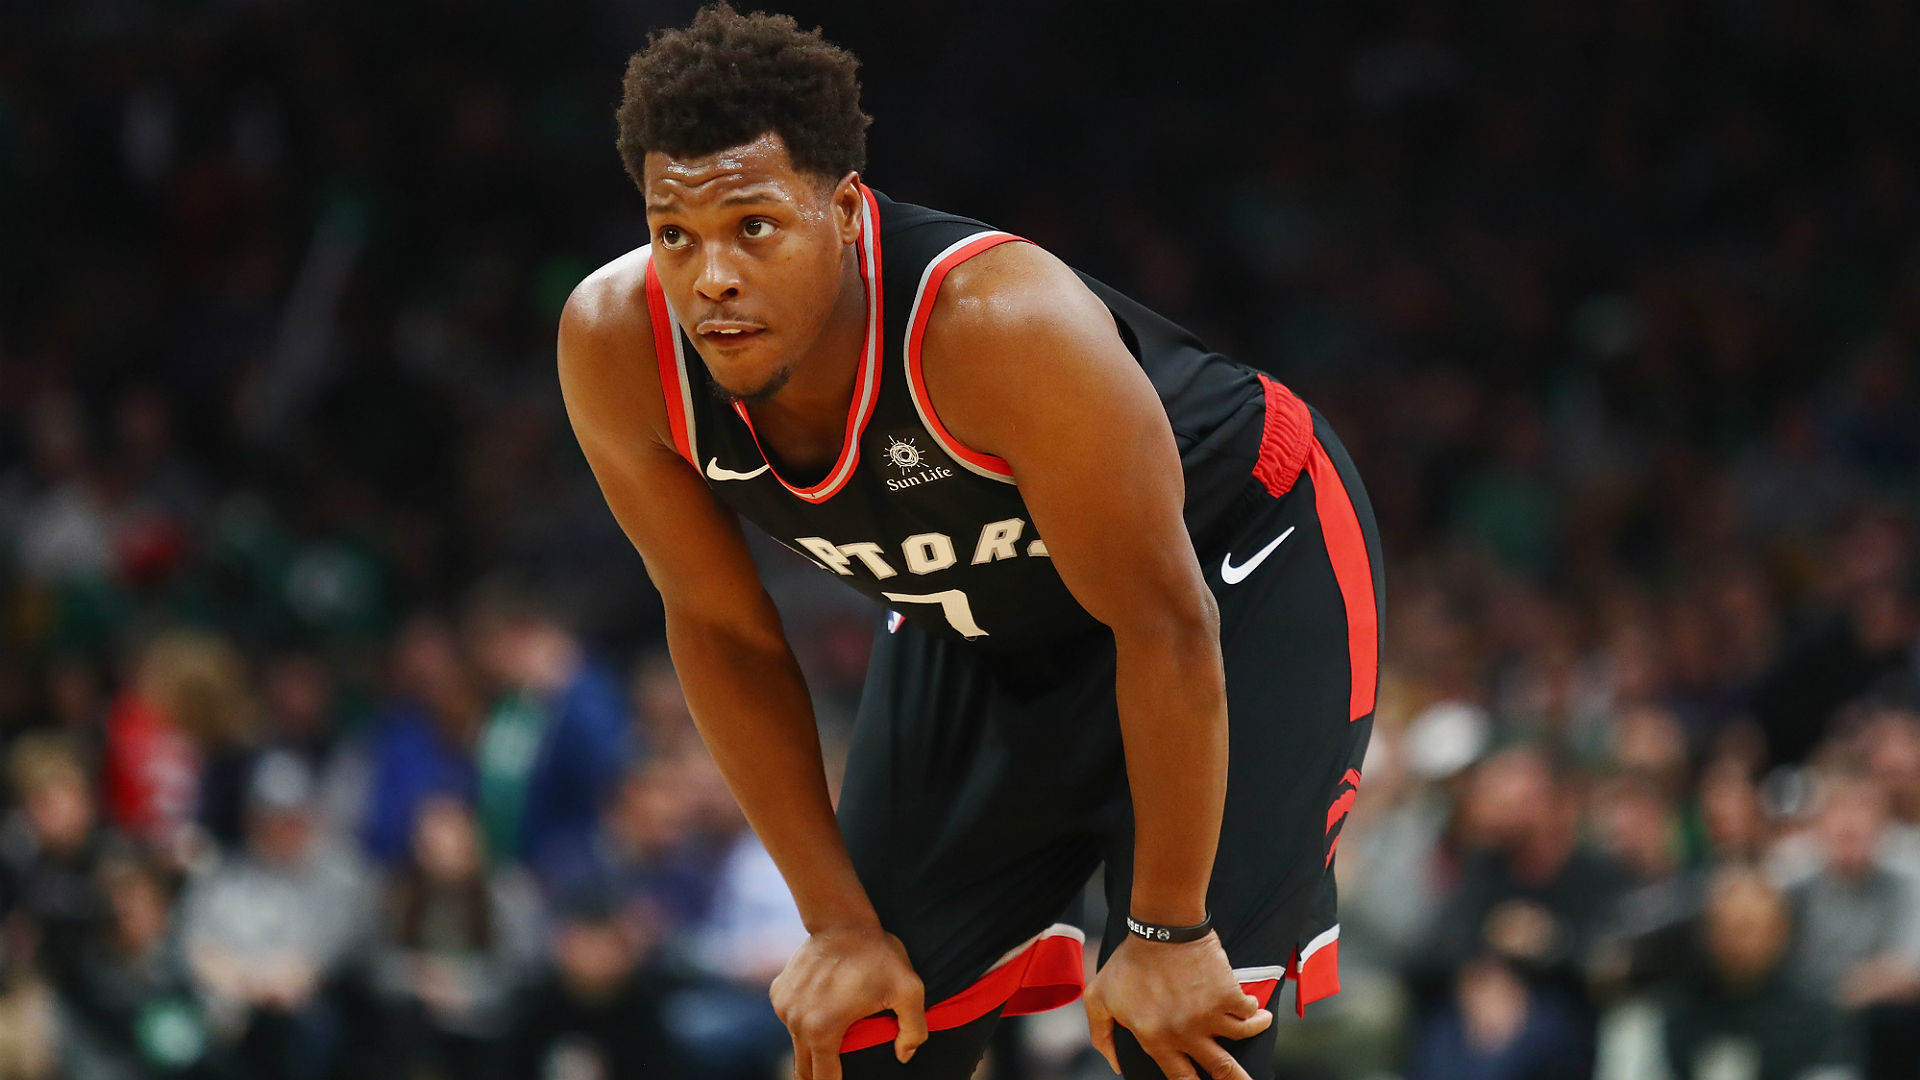 Robinson apologizes, but 'didn't mean to' fall on Lowry